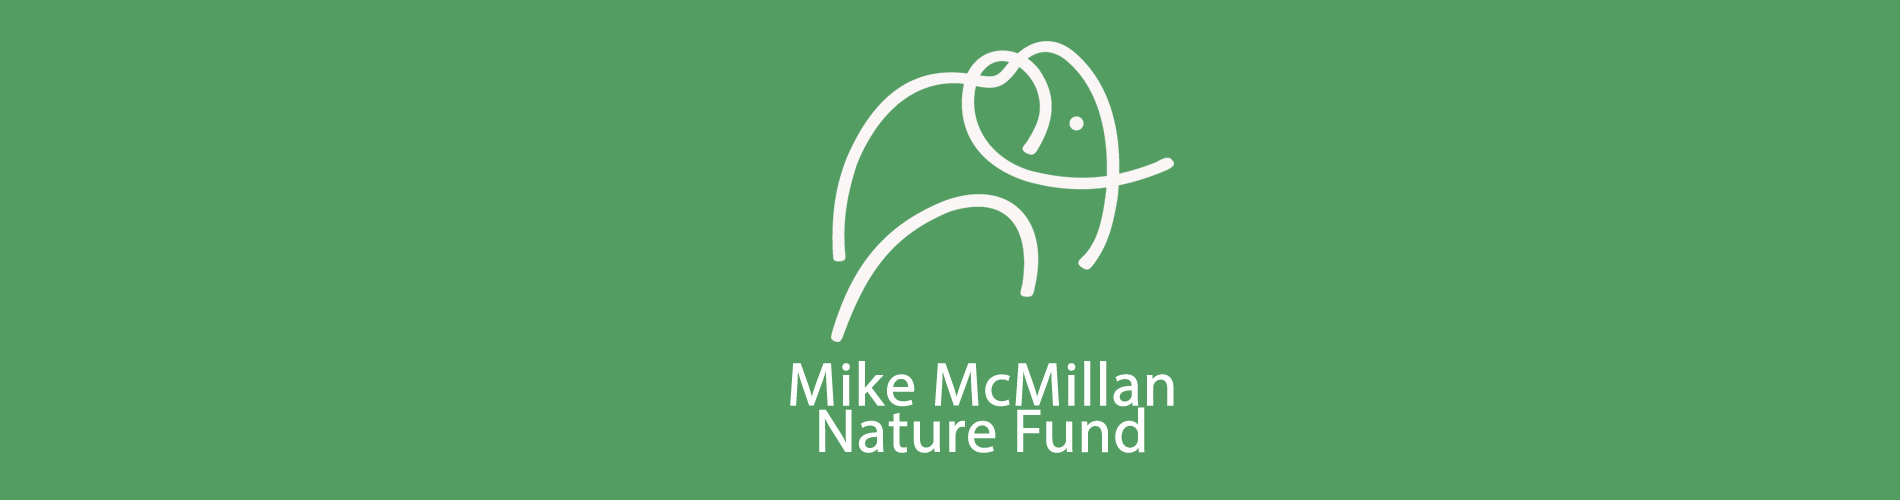 Mike McMillan Nature Fund Banner